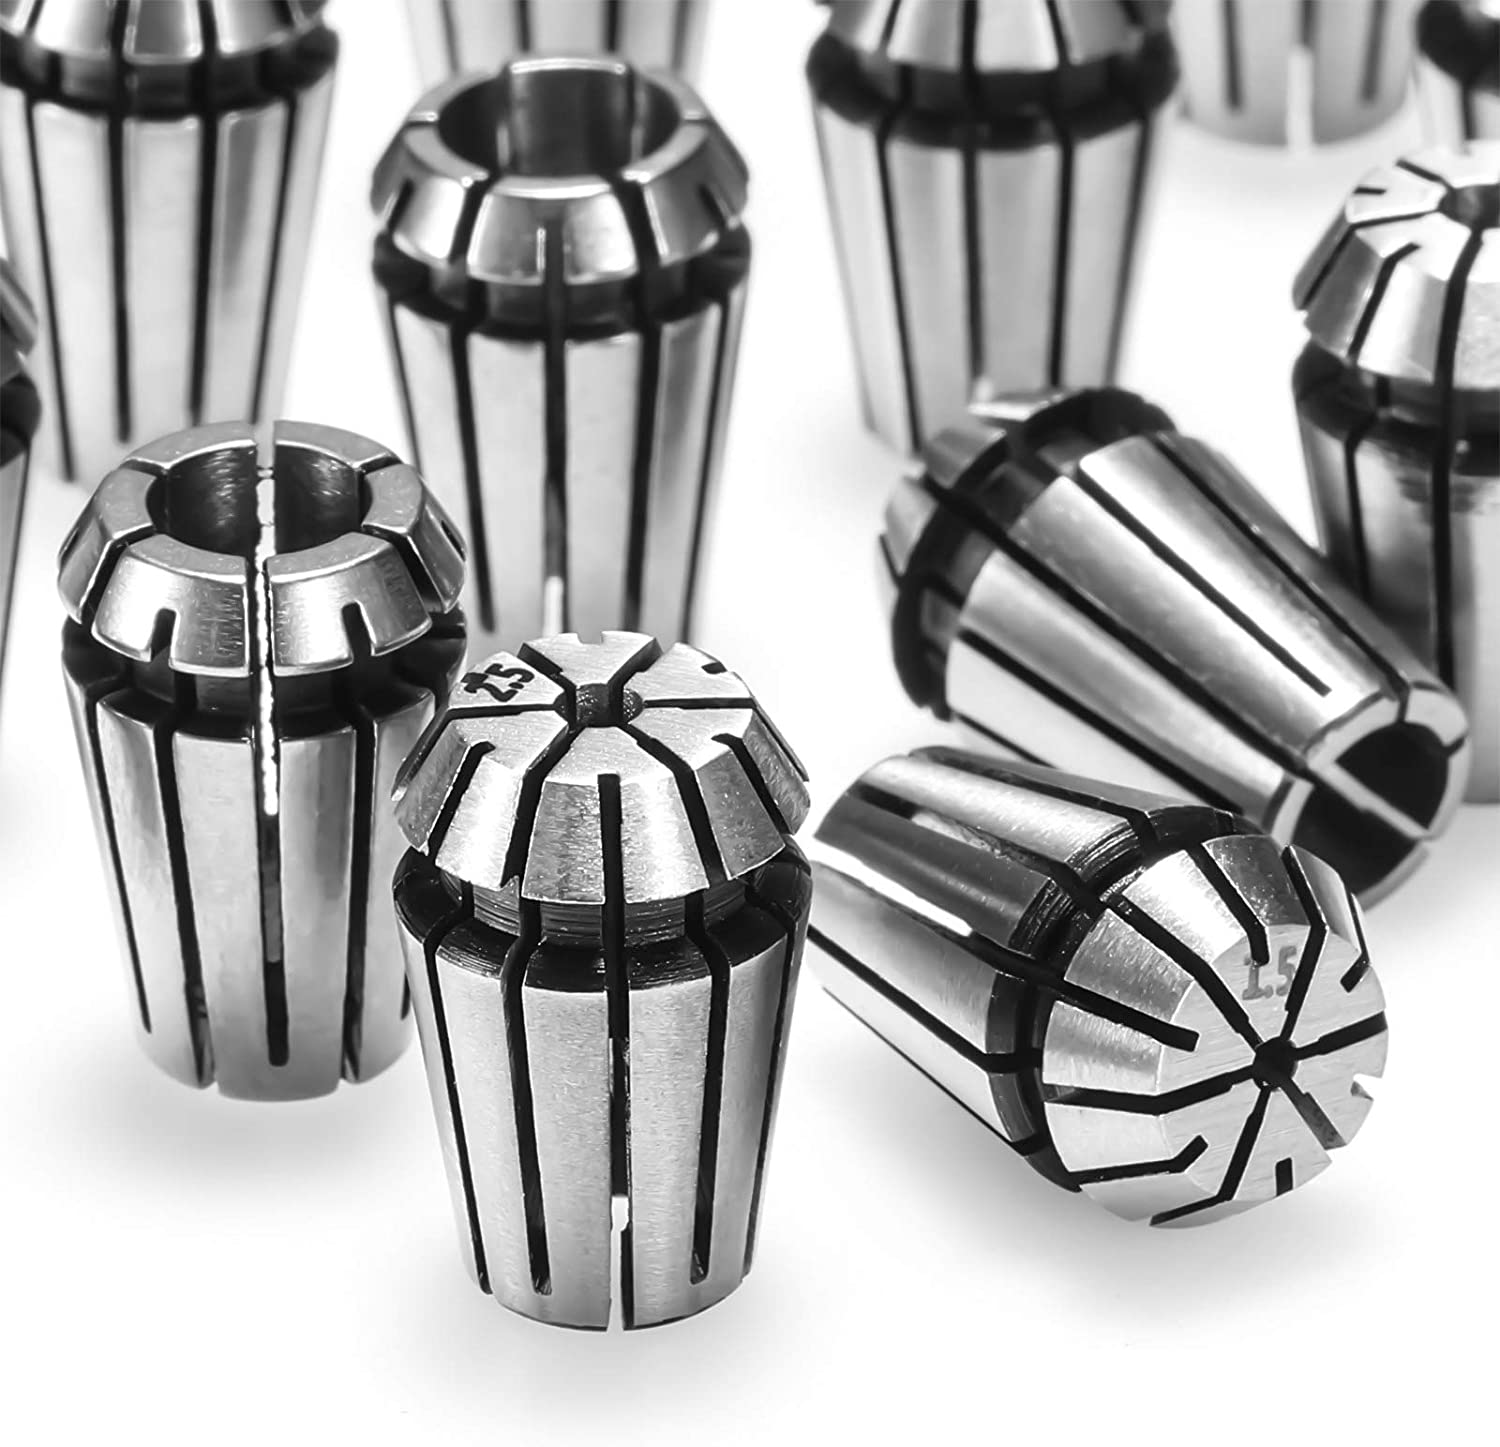 Details about  /2Pcs High Accuracy Spring Steel CNC Collet Accessories